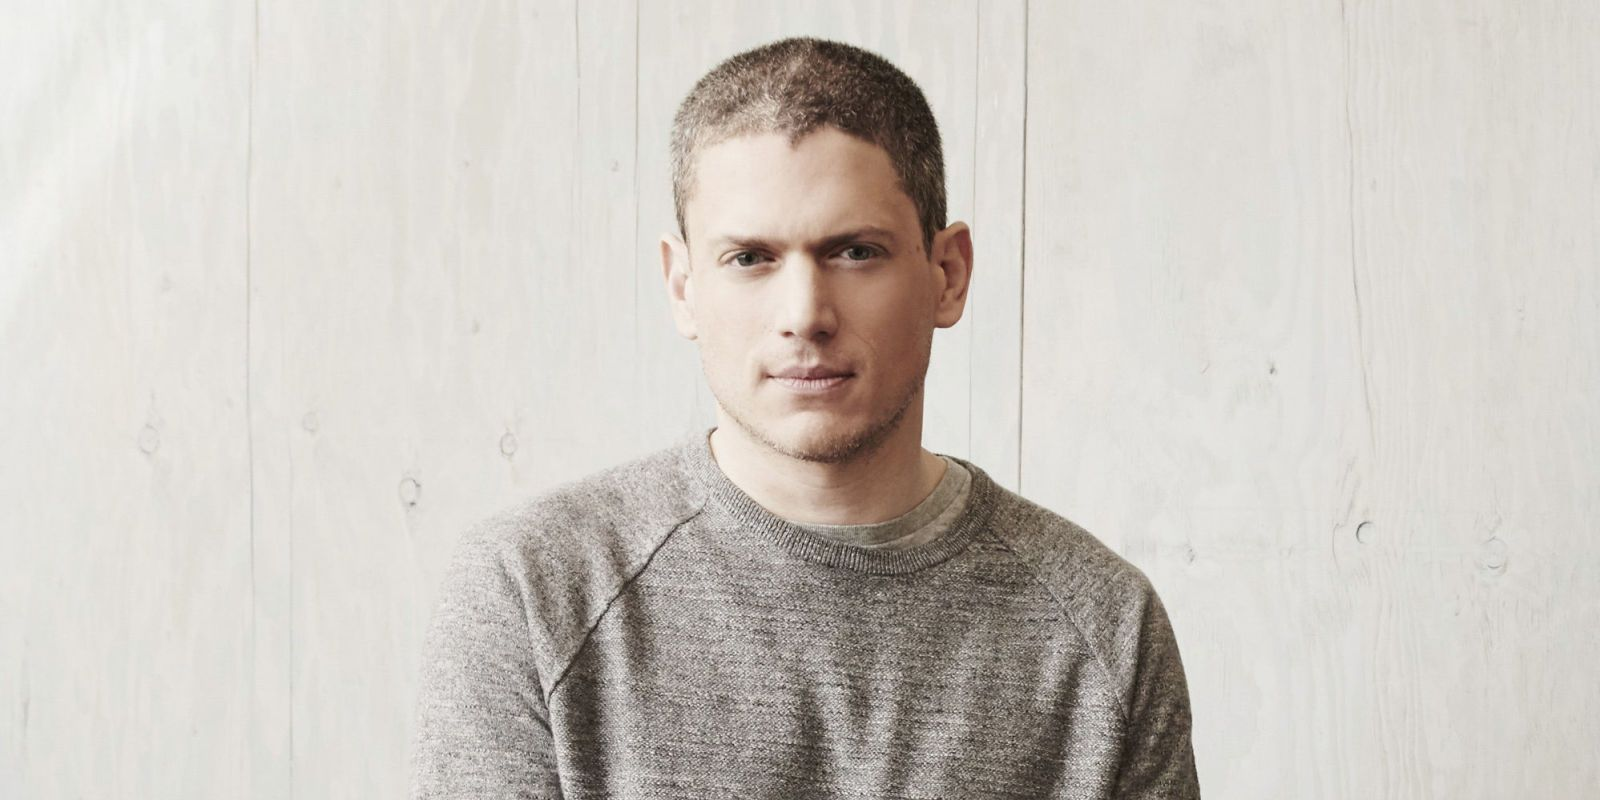 landscape 1459253156 gettyimages 505140480?resize=768 * wentworth miller responds to body shaming meme, opens up about